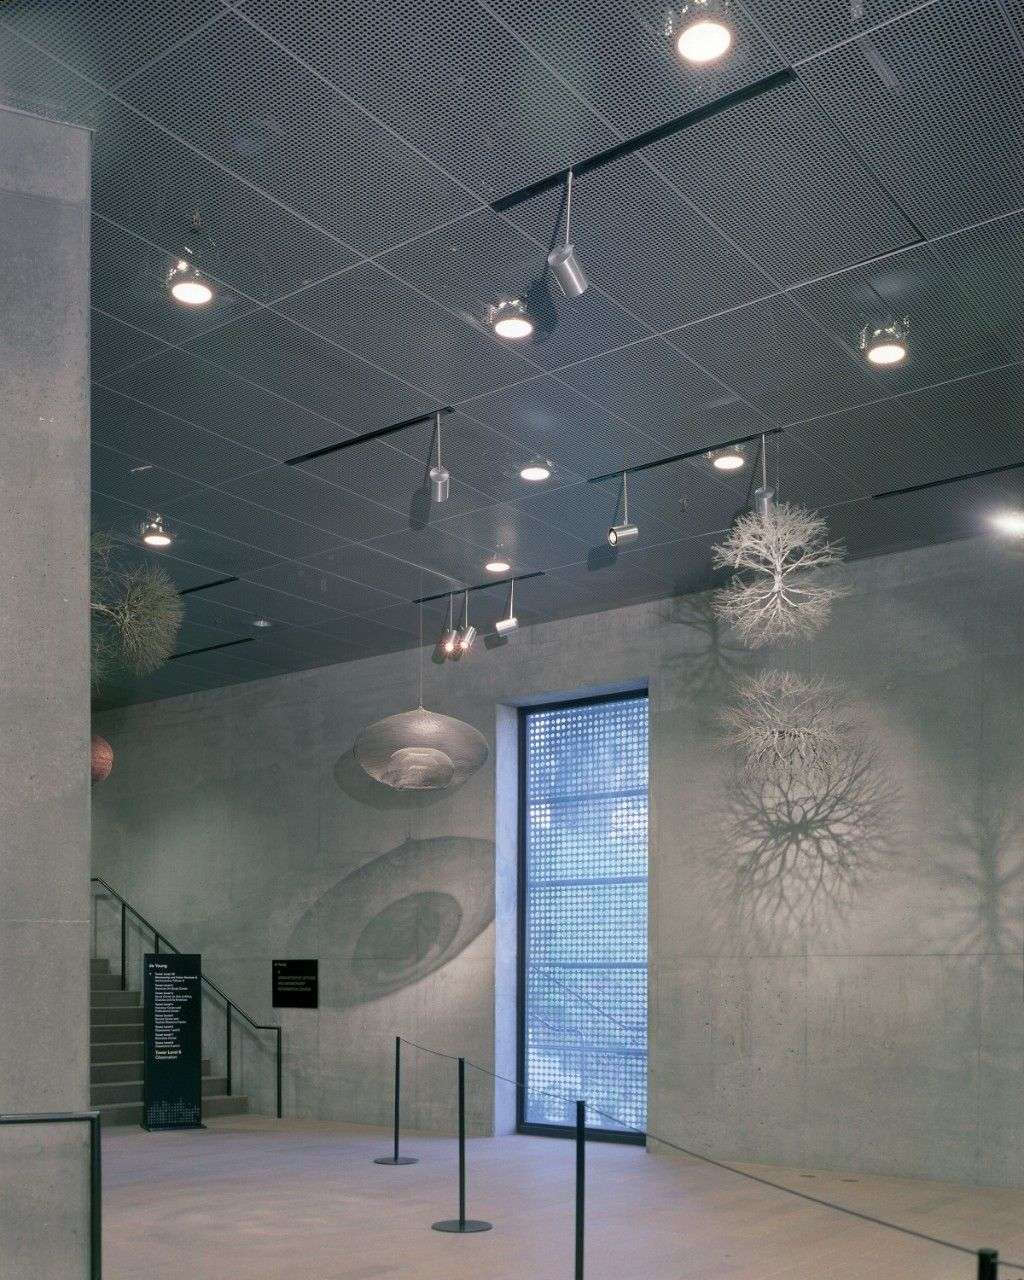 Celebration metal ceiling panels l o c k e r r o o m discover all the information about the product metal suspended ceiling panel usg celebration usg and find where you can buy it dailygadgetfo Image collections